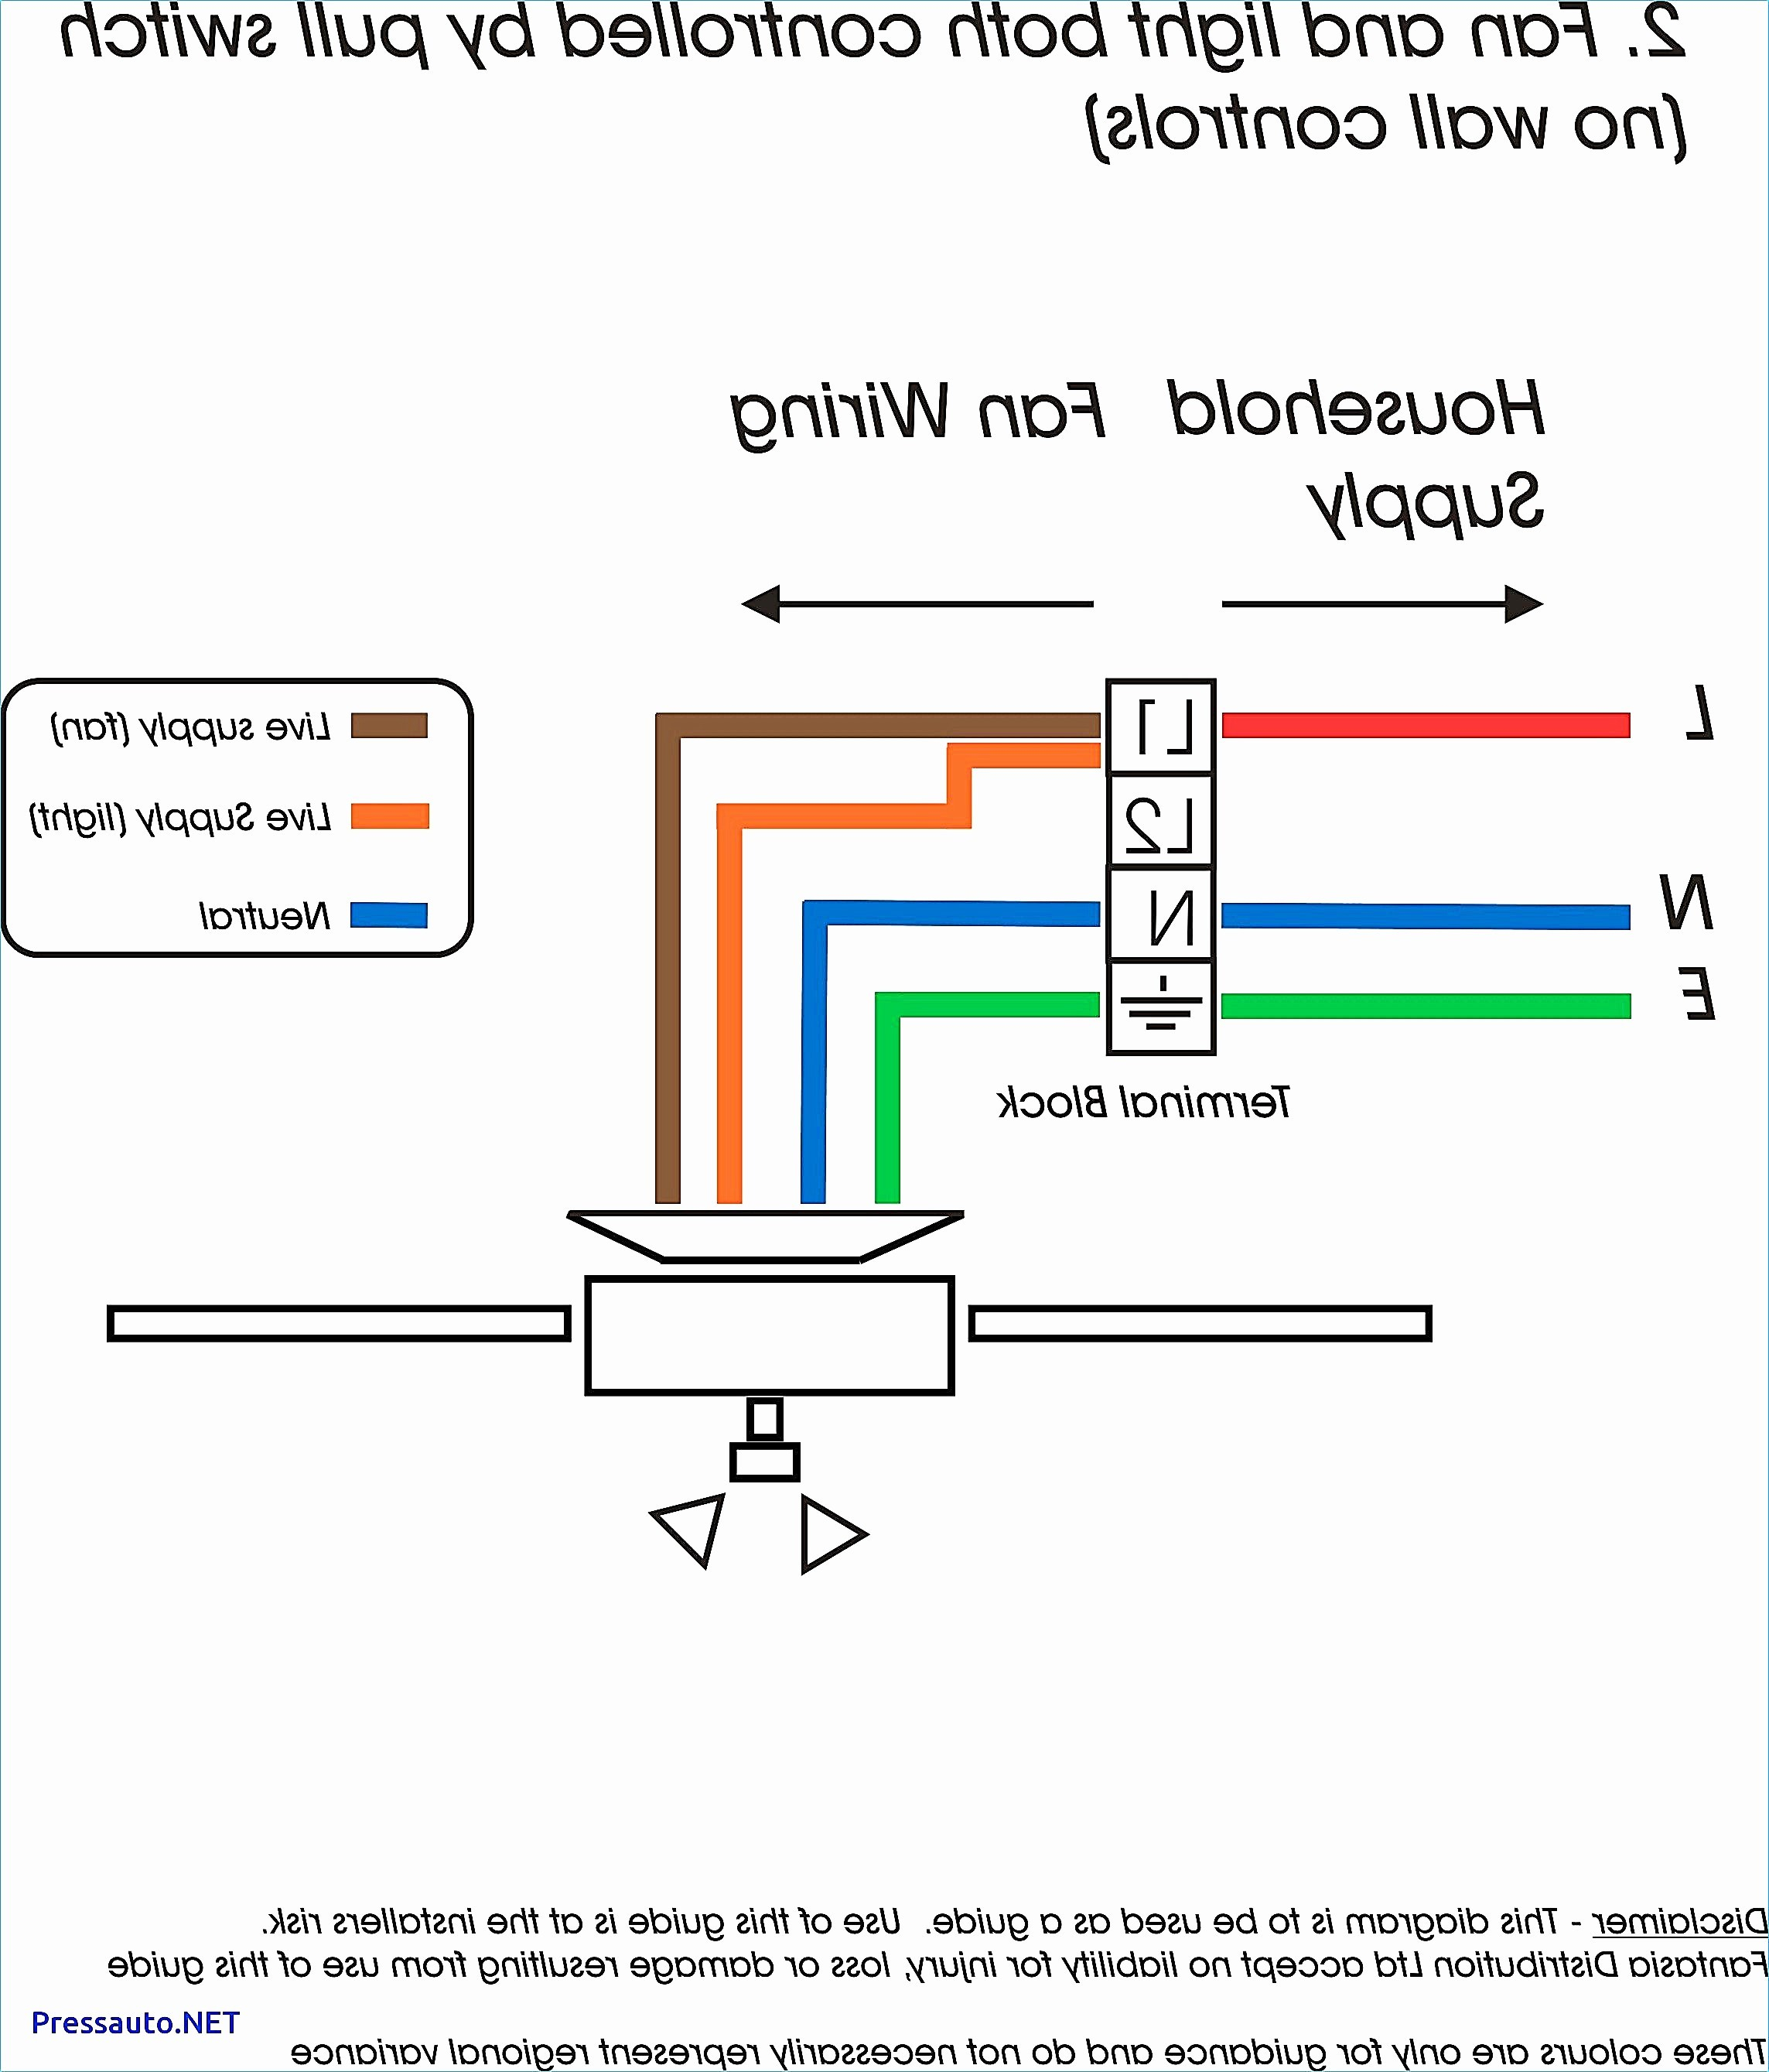 push to talk switch wiring diagram Collection-Wiring Multiple Lights And Switches e Circuit Diagram Valid Wiring Multiple Lights And Switches E Circuit Diagram Luxury 18-b